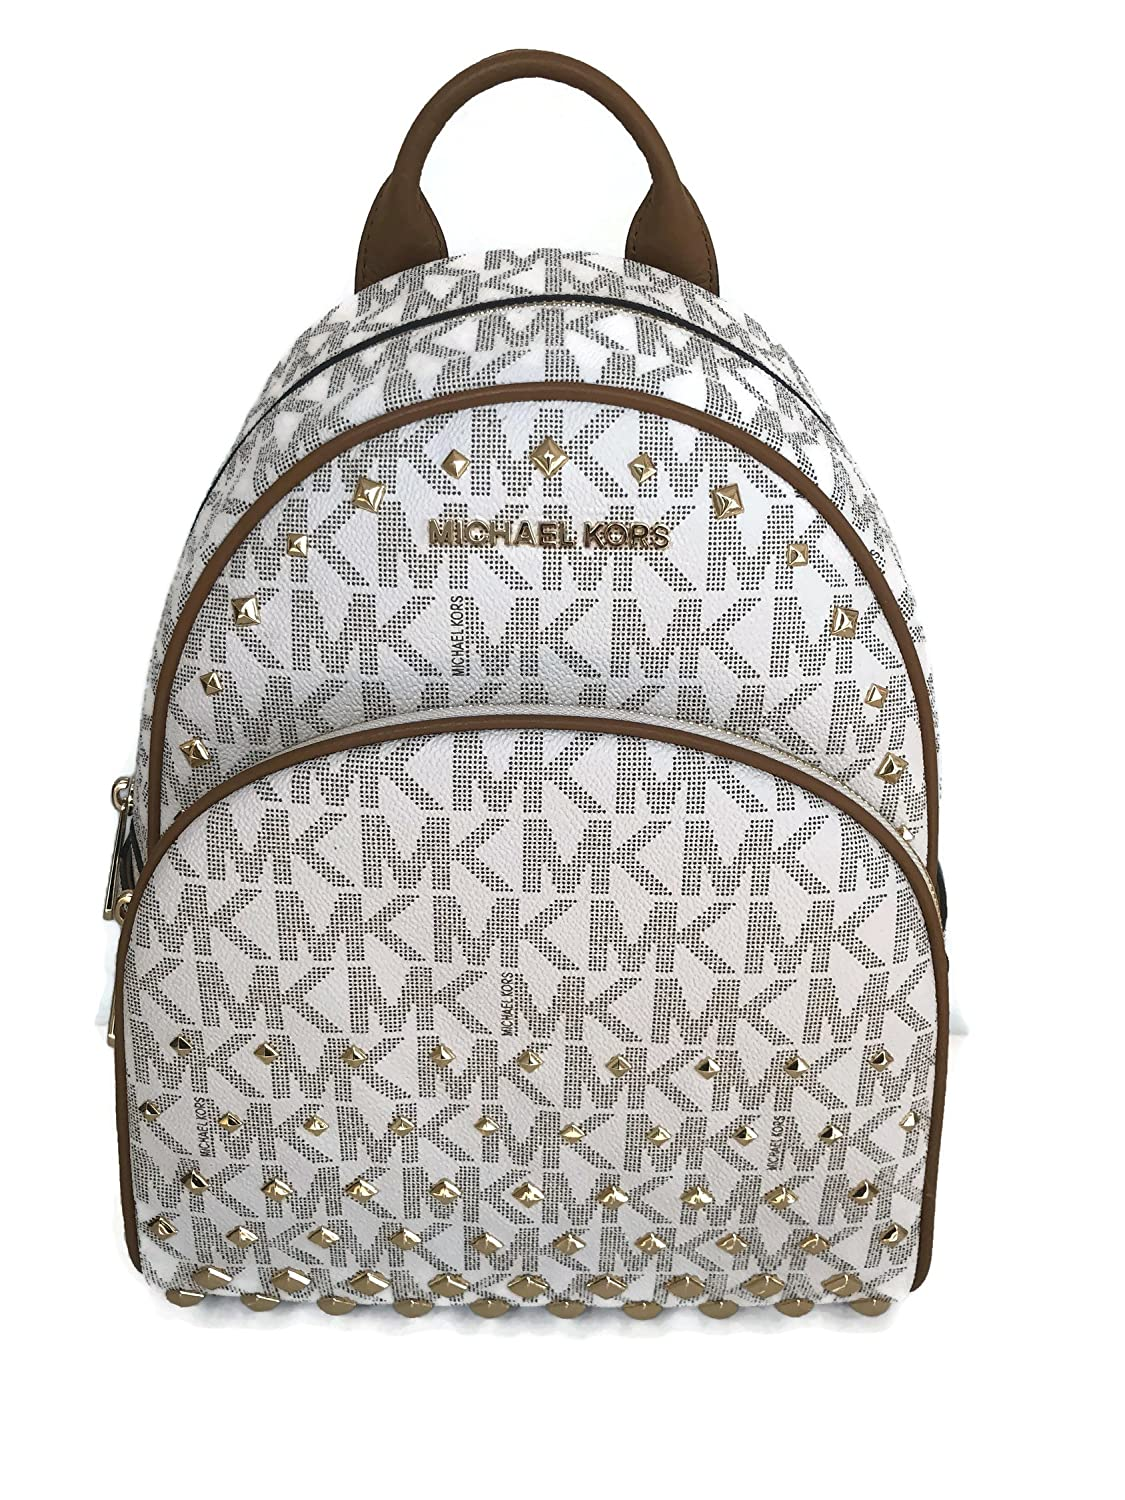 46581f850343 ... reduced amazon michael kors abbey medium backpack vanilla mk signature  stud school bag shoes 6eec5 b7495